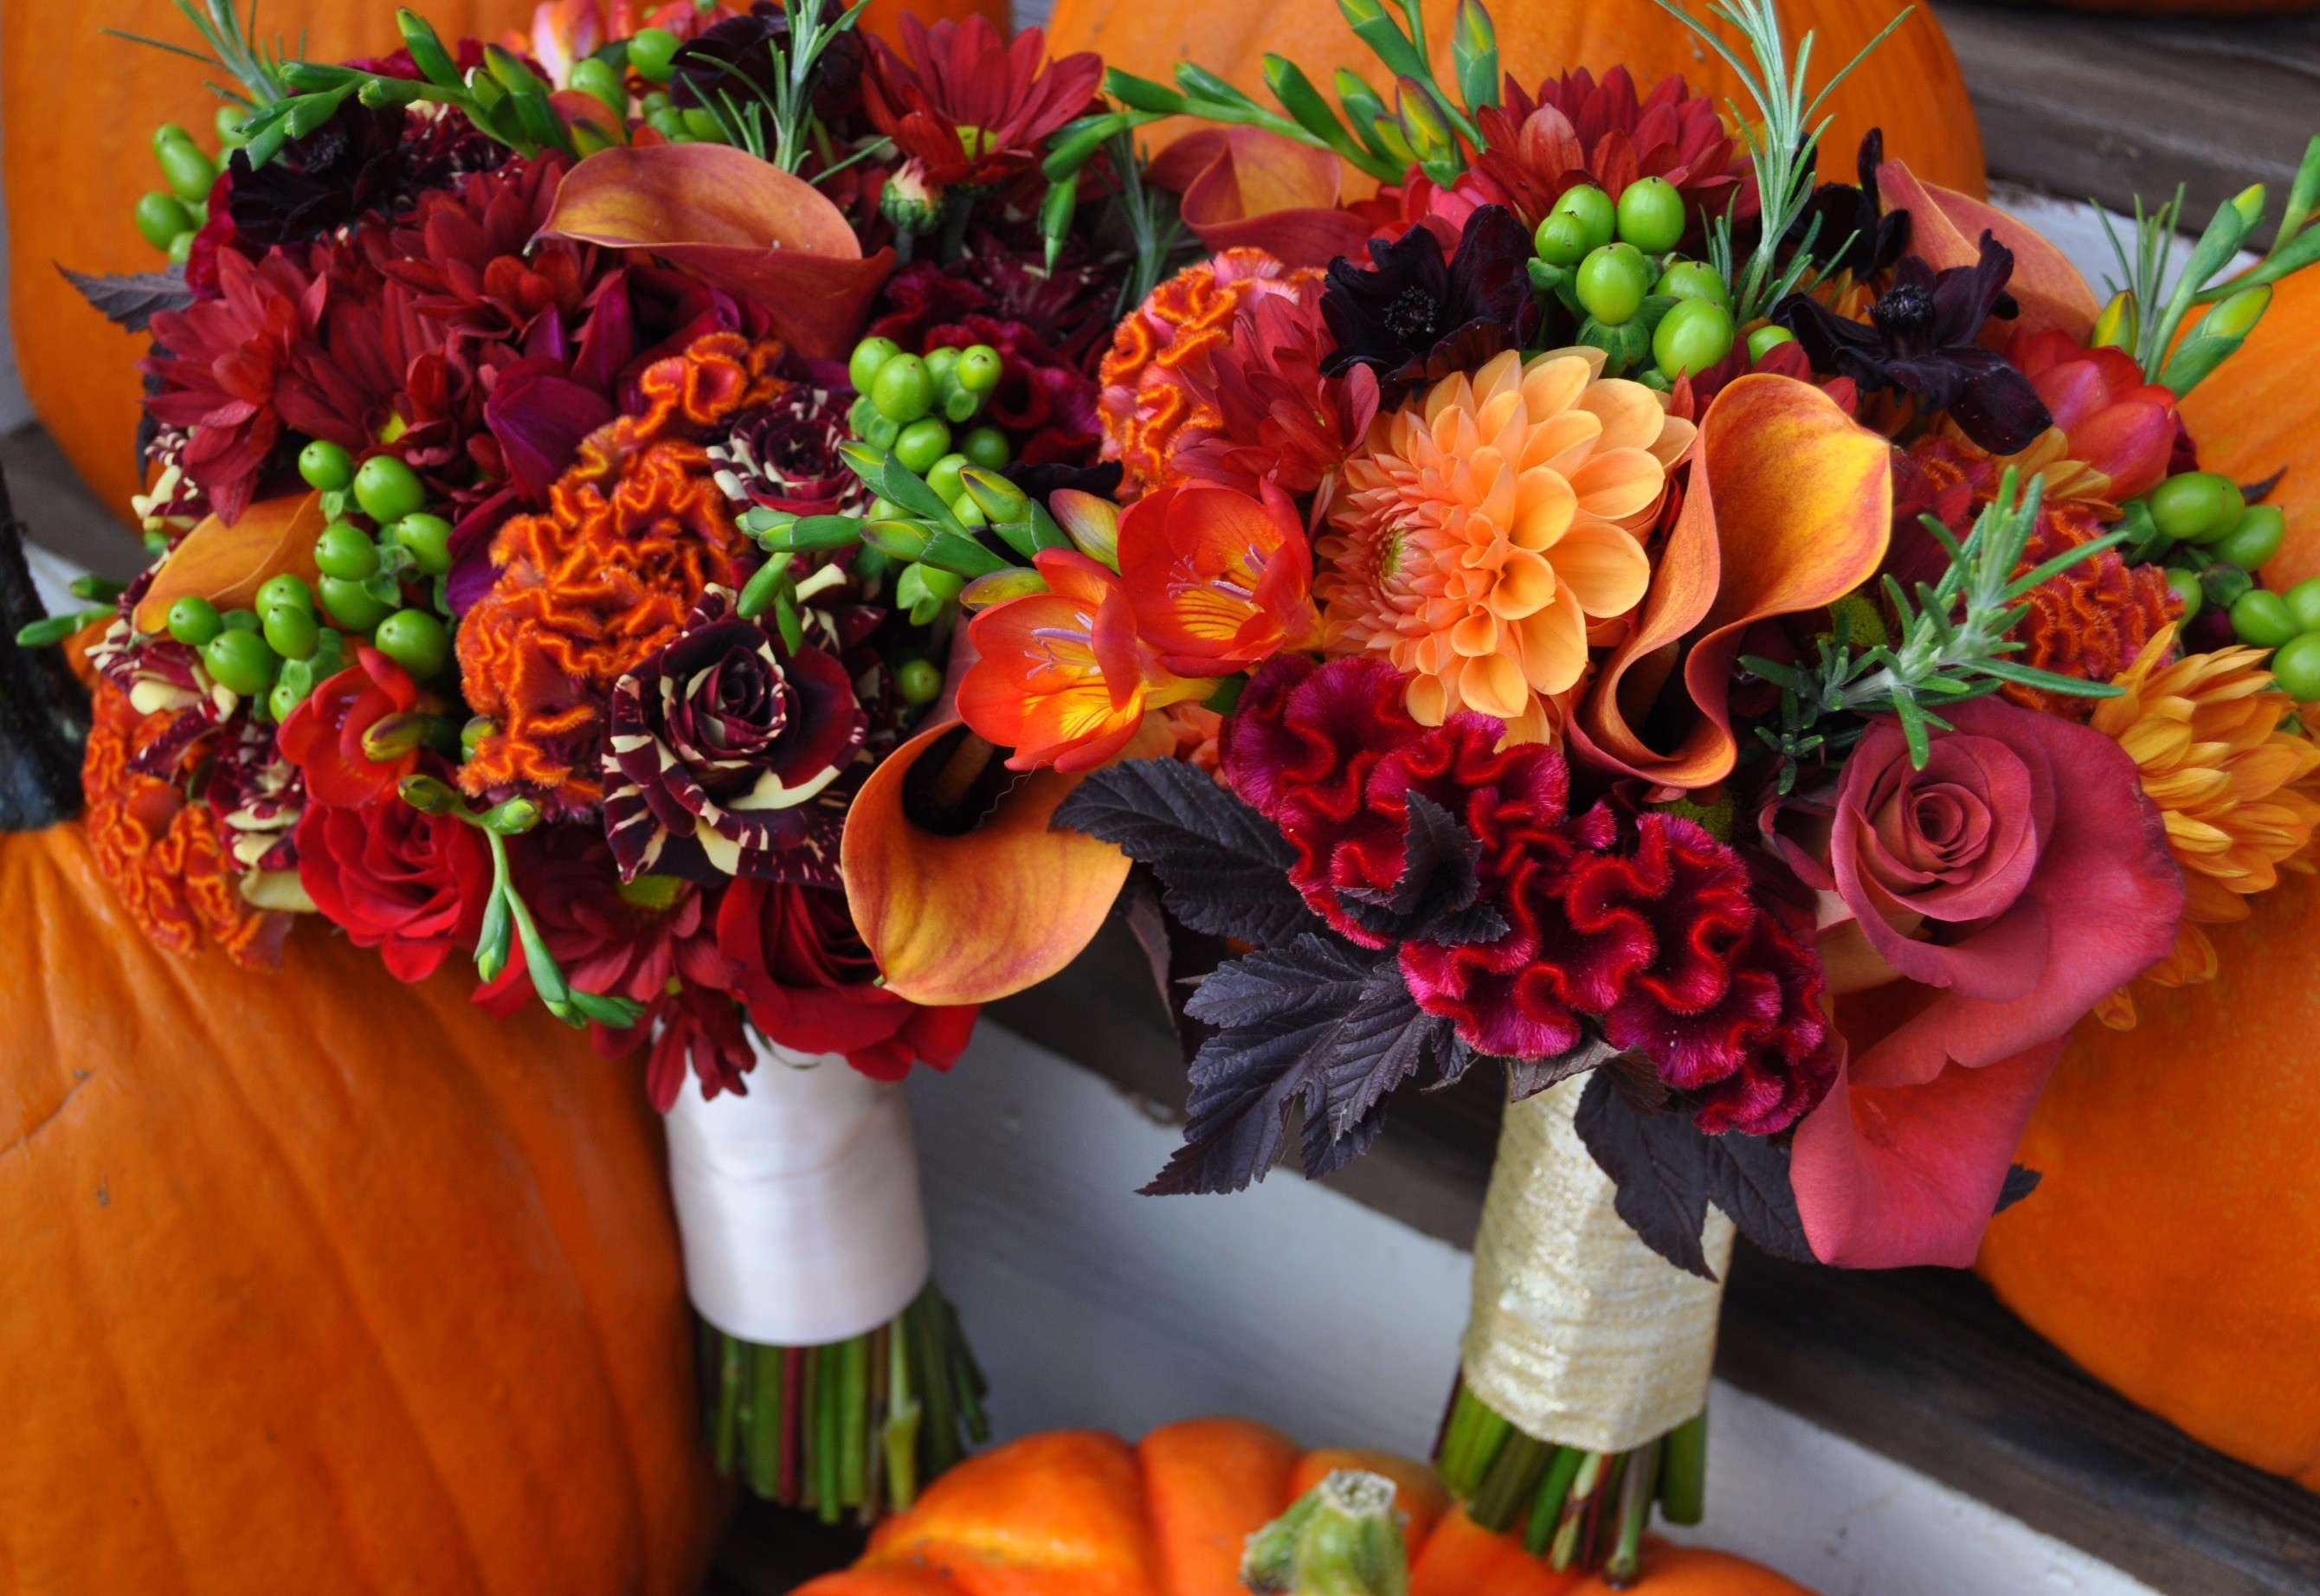 Fall wedding colors country bouquets desktop wallpapers.